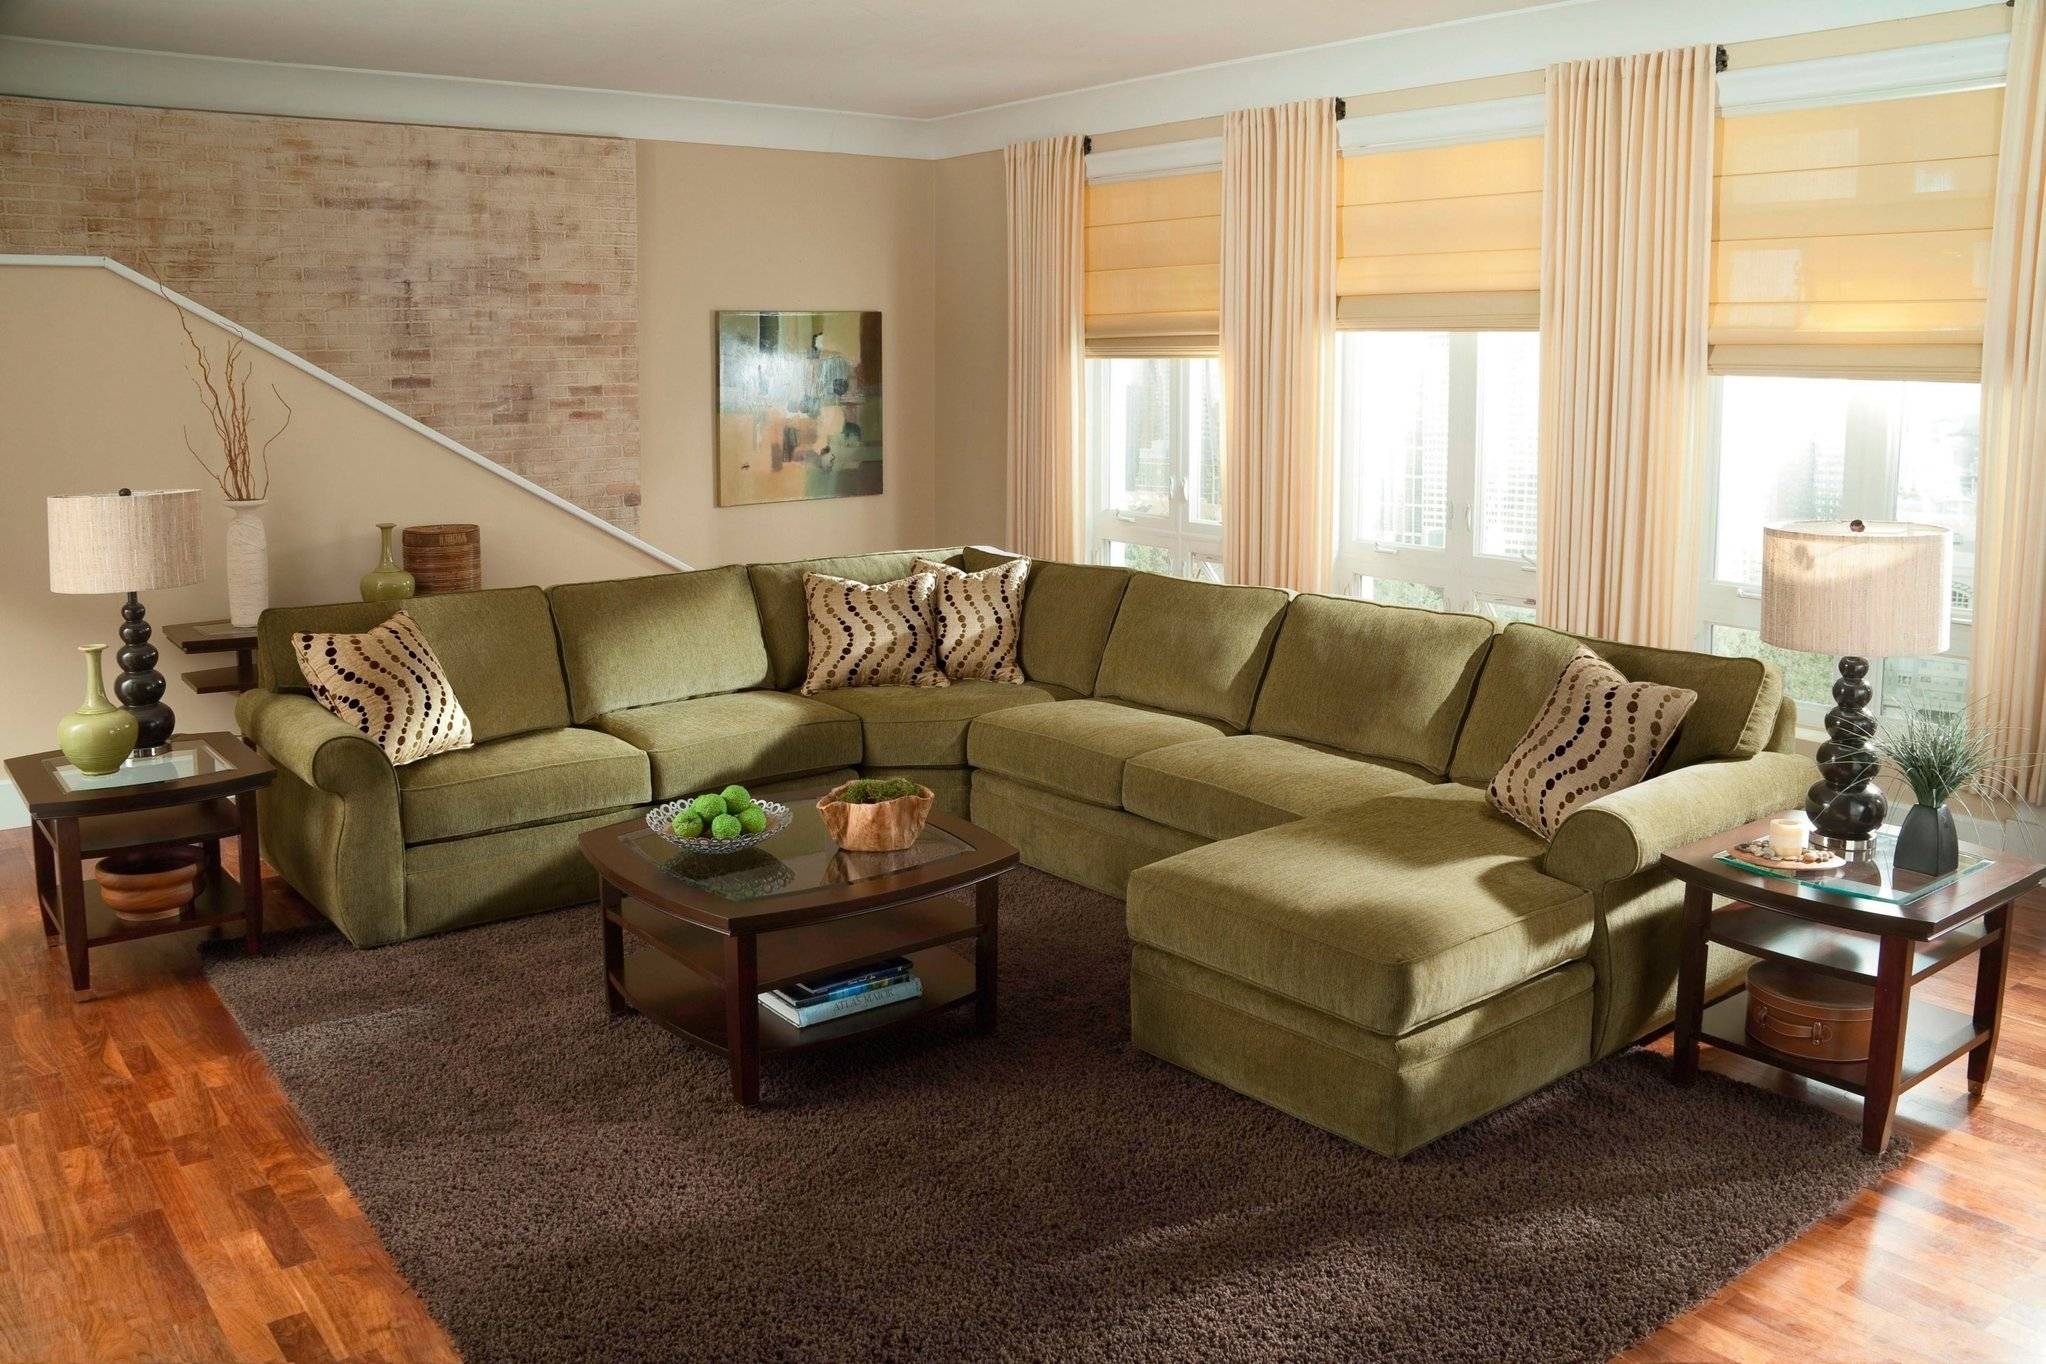 Interior: Luxury Oversized Sectional Sofa For Awesome Living Room with regard to Oversized Sectional Sofa (Image 19 of 30)